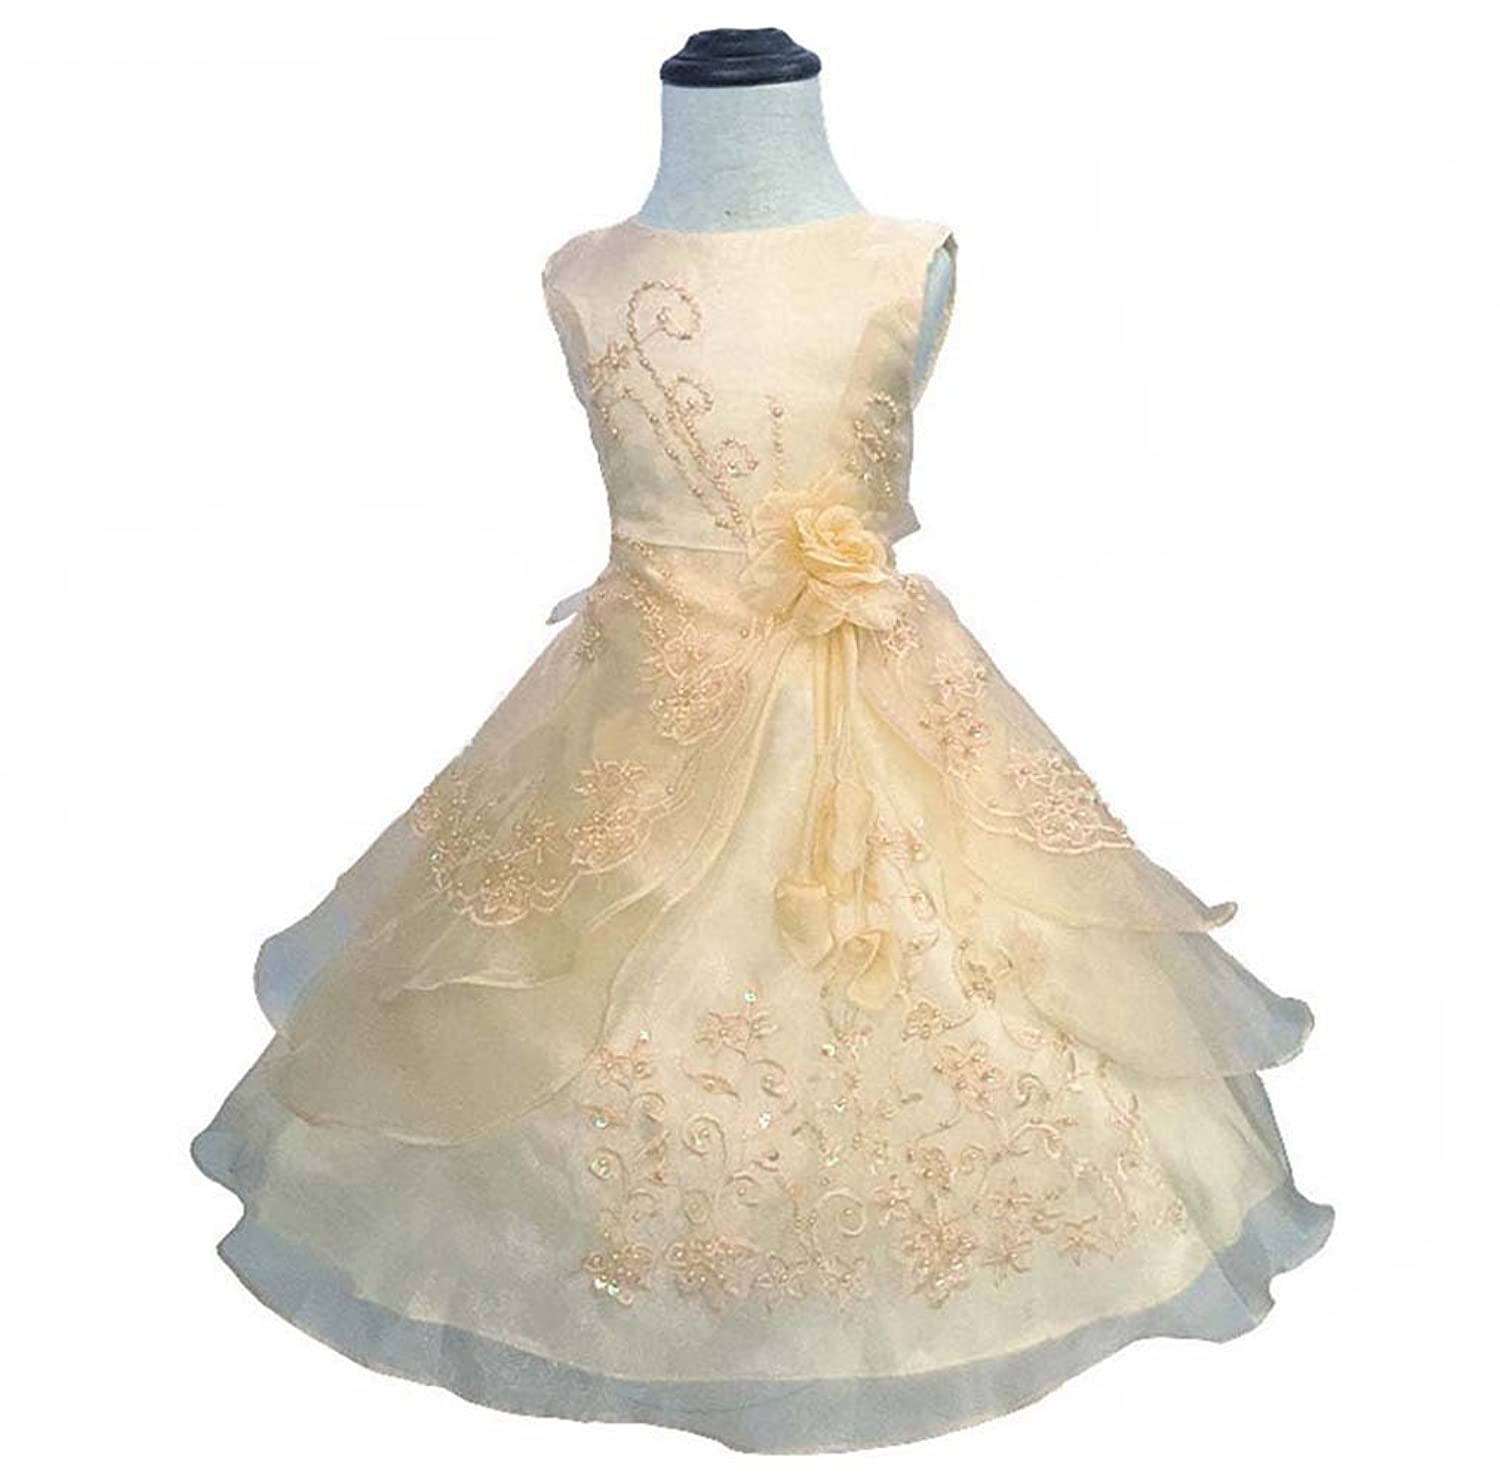 abc401e59 AliceHouse Girls Long Embroidered Flower Wedding Party Bridesmaid Princess  Gown Dress GD35